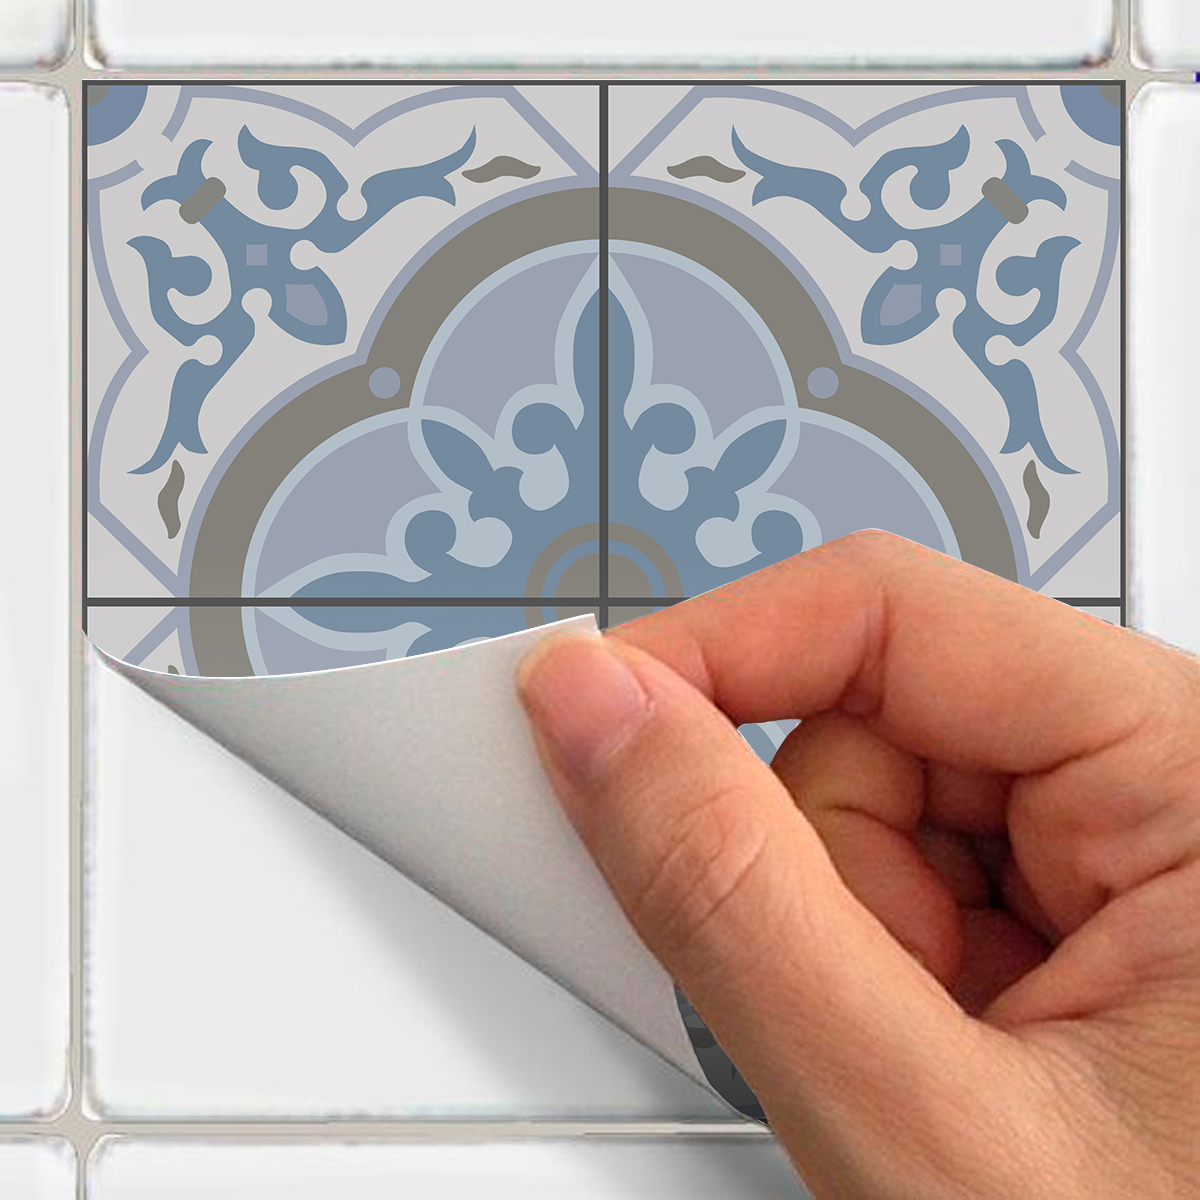 Cuisine De Assia 60 Stickers Carrelages Azulejos Assia Cuisine Carrelages